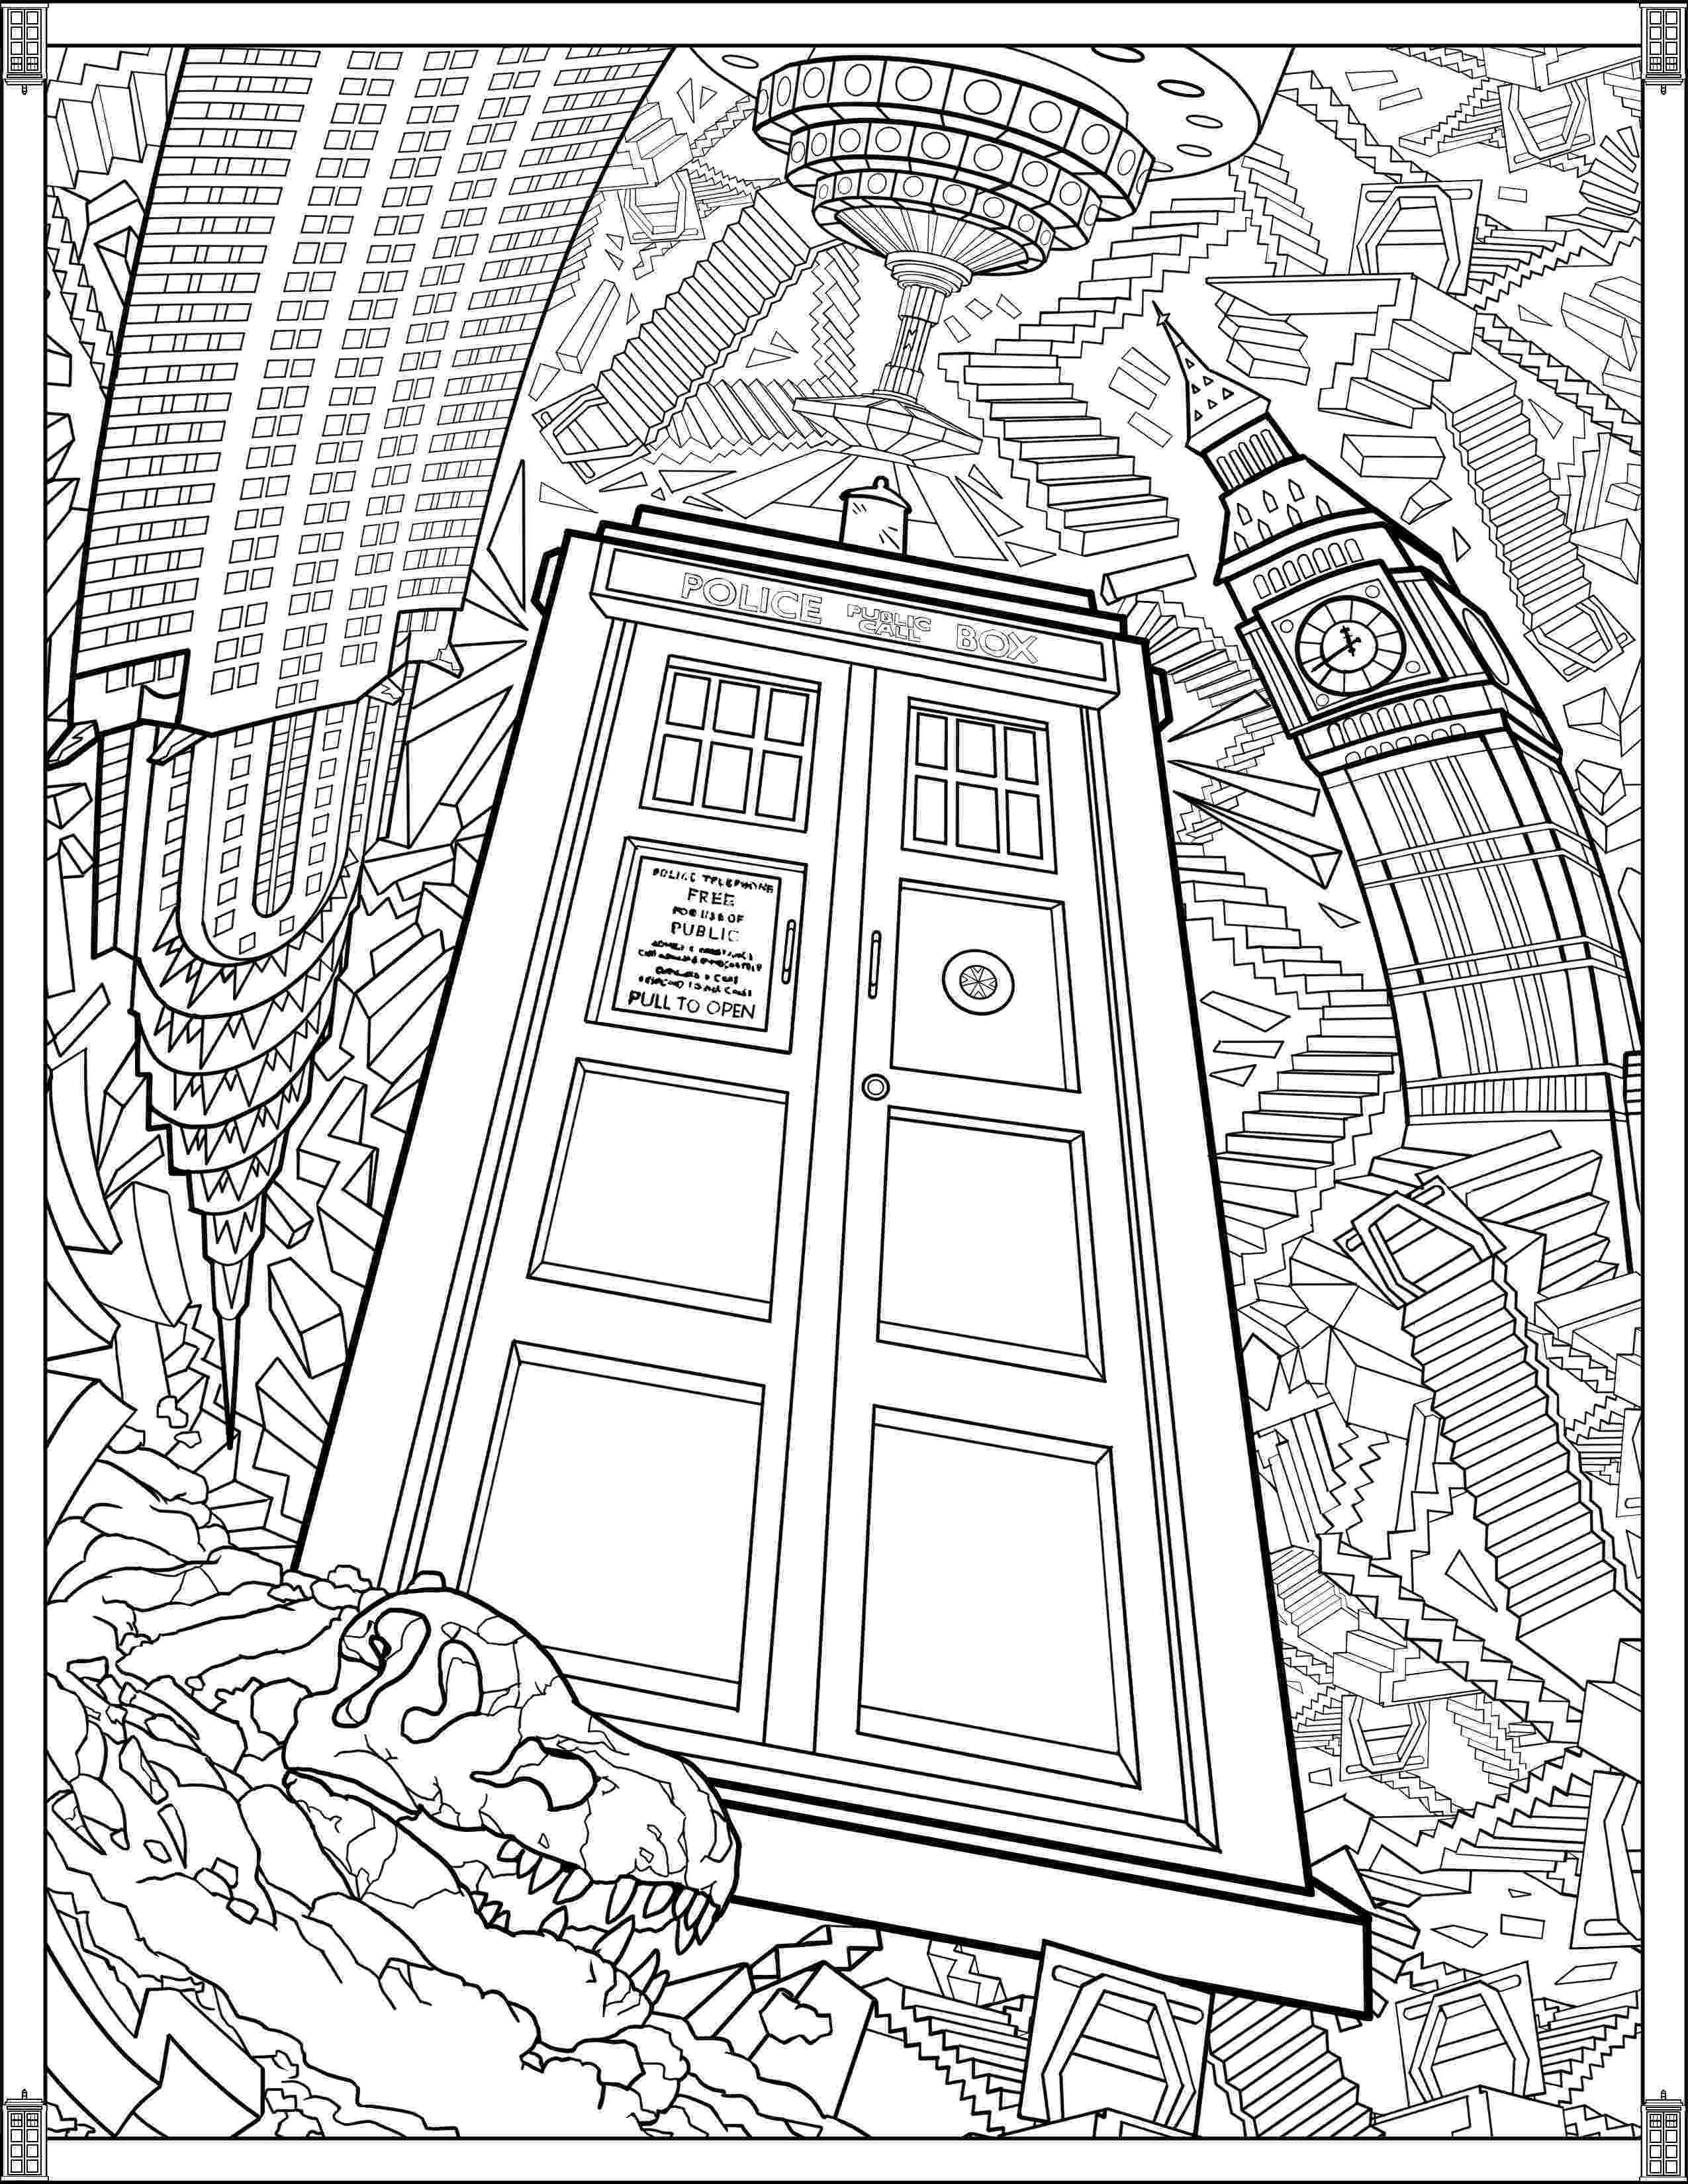 doctor who tardis coloring pages doctor who tardis fun crafts pinterest tardis adult doctor coloring pages who tardis